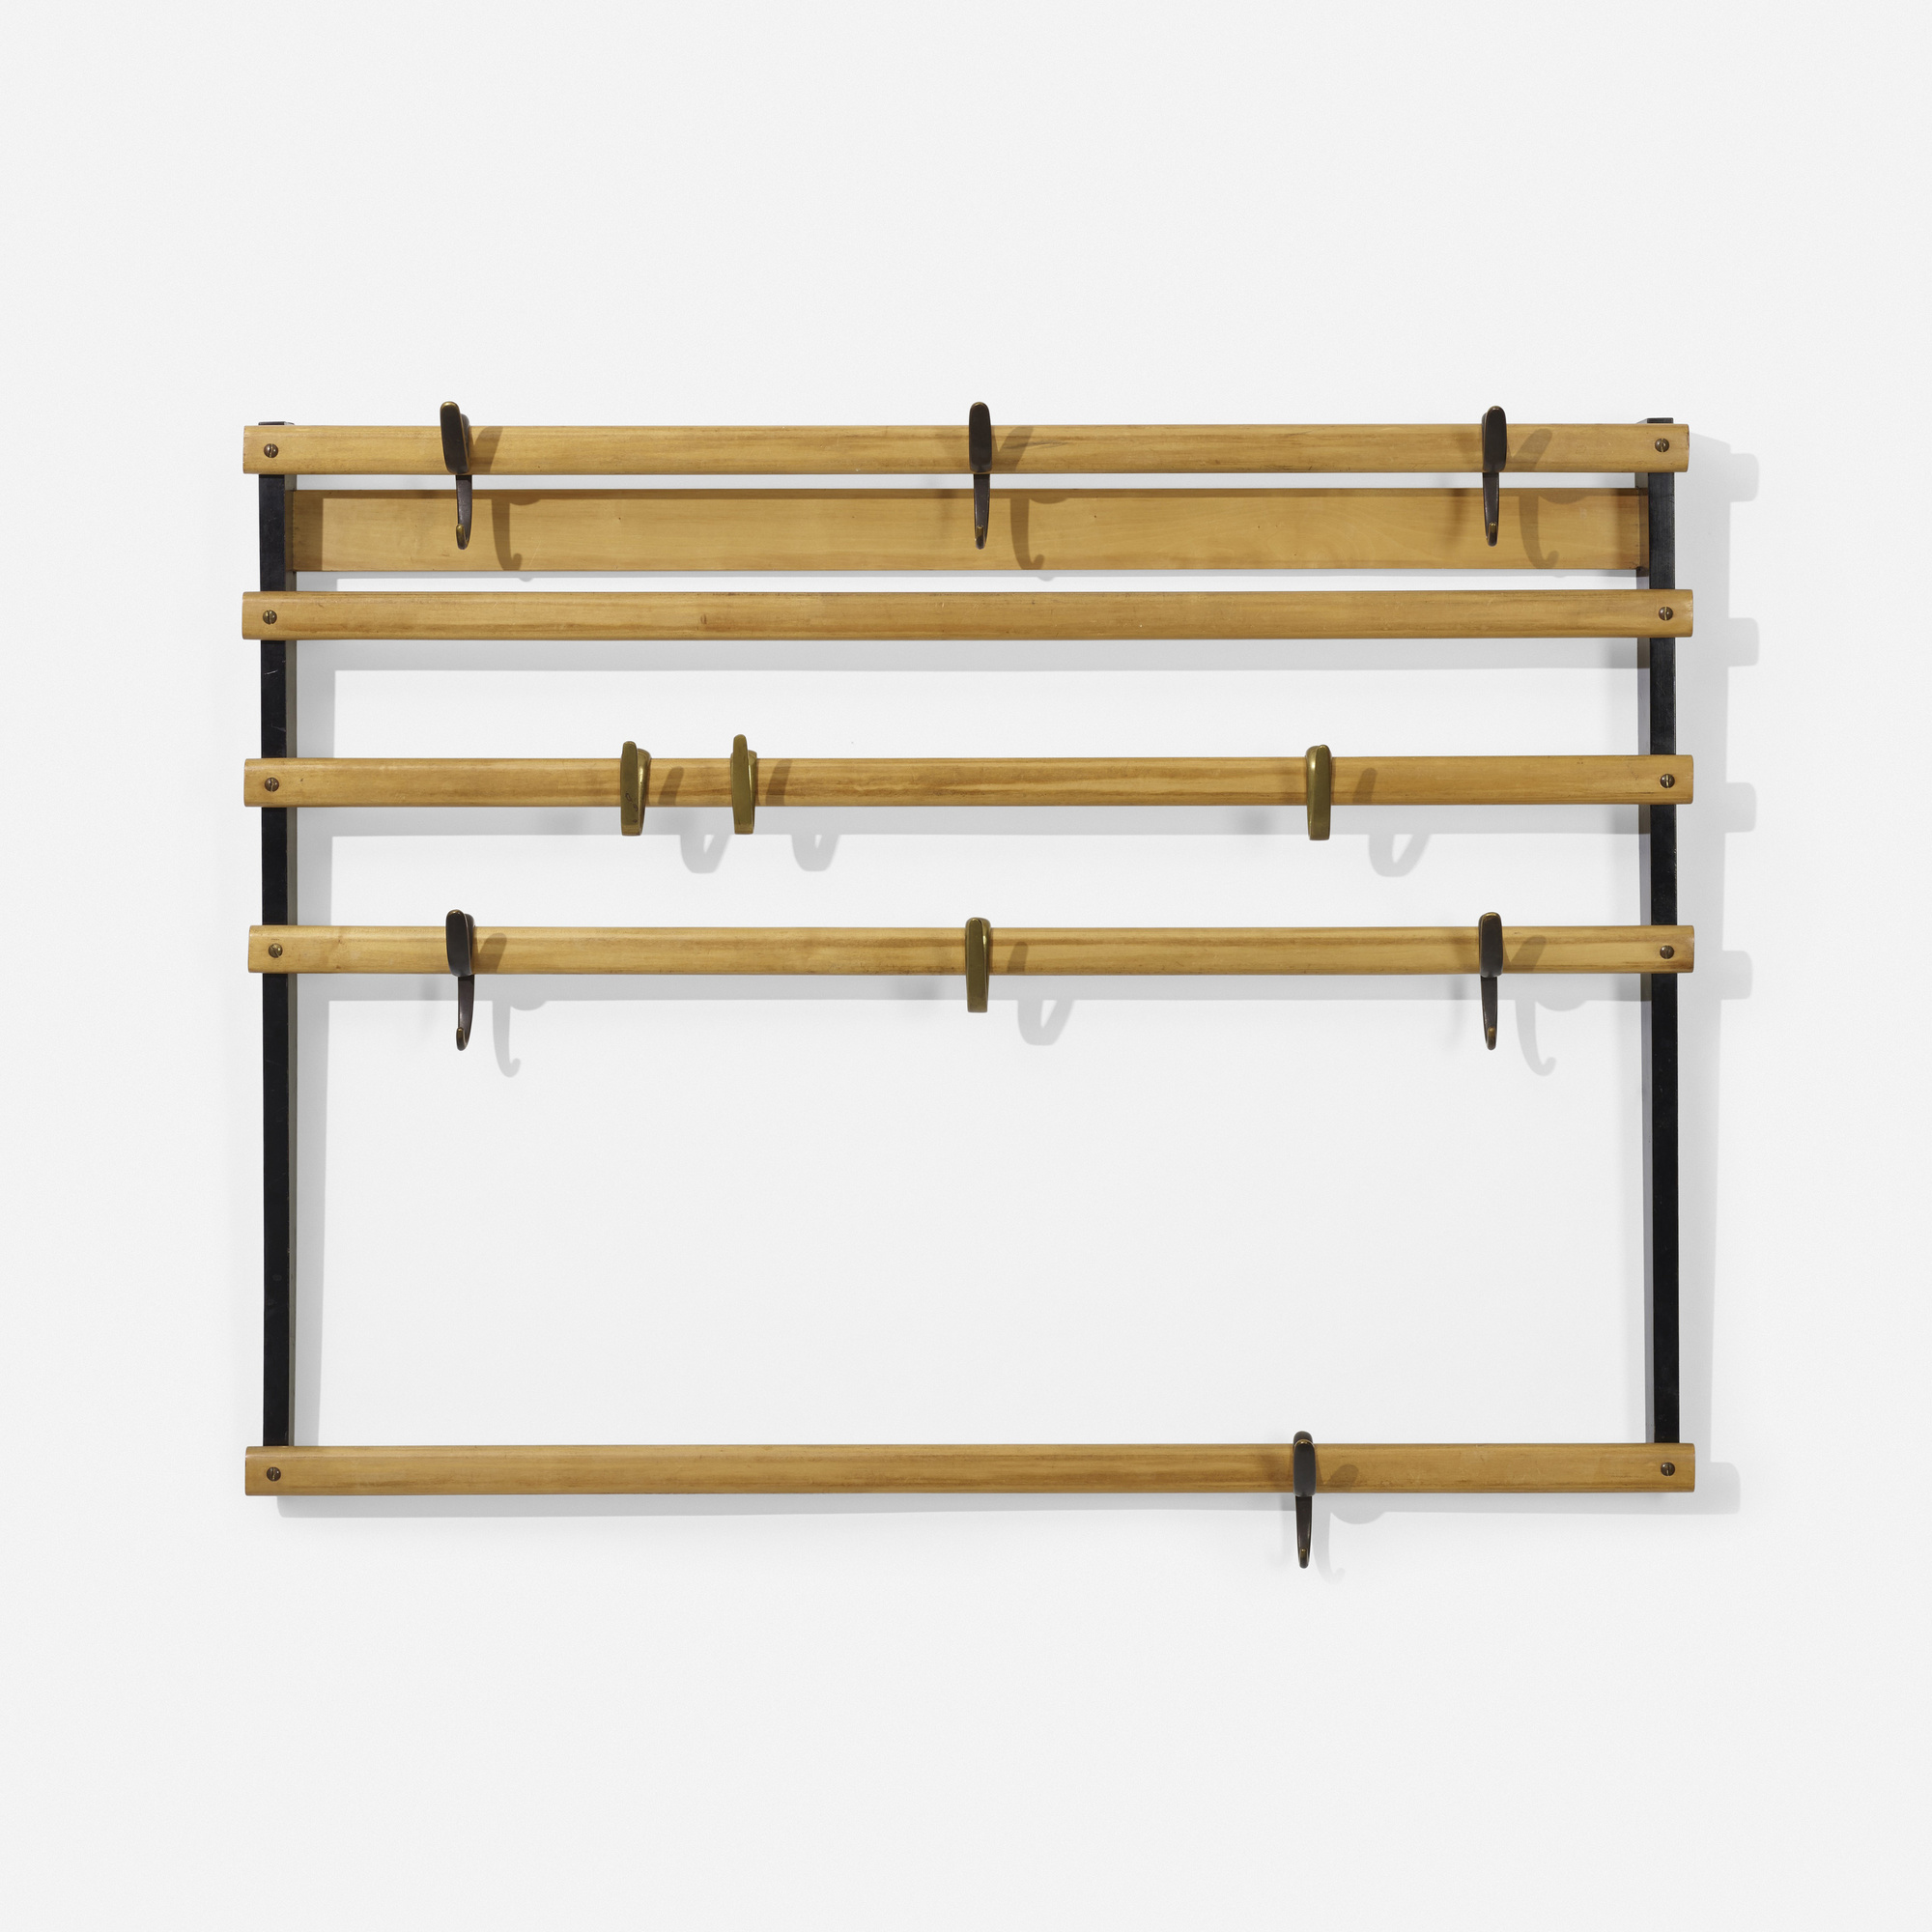 129: Carl Auböck II / wall-mounted coatrack, model 4547 (2 of 2)